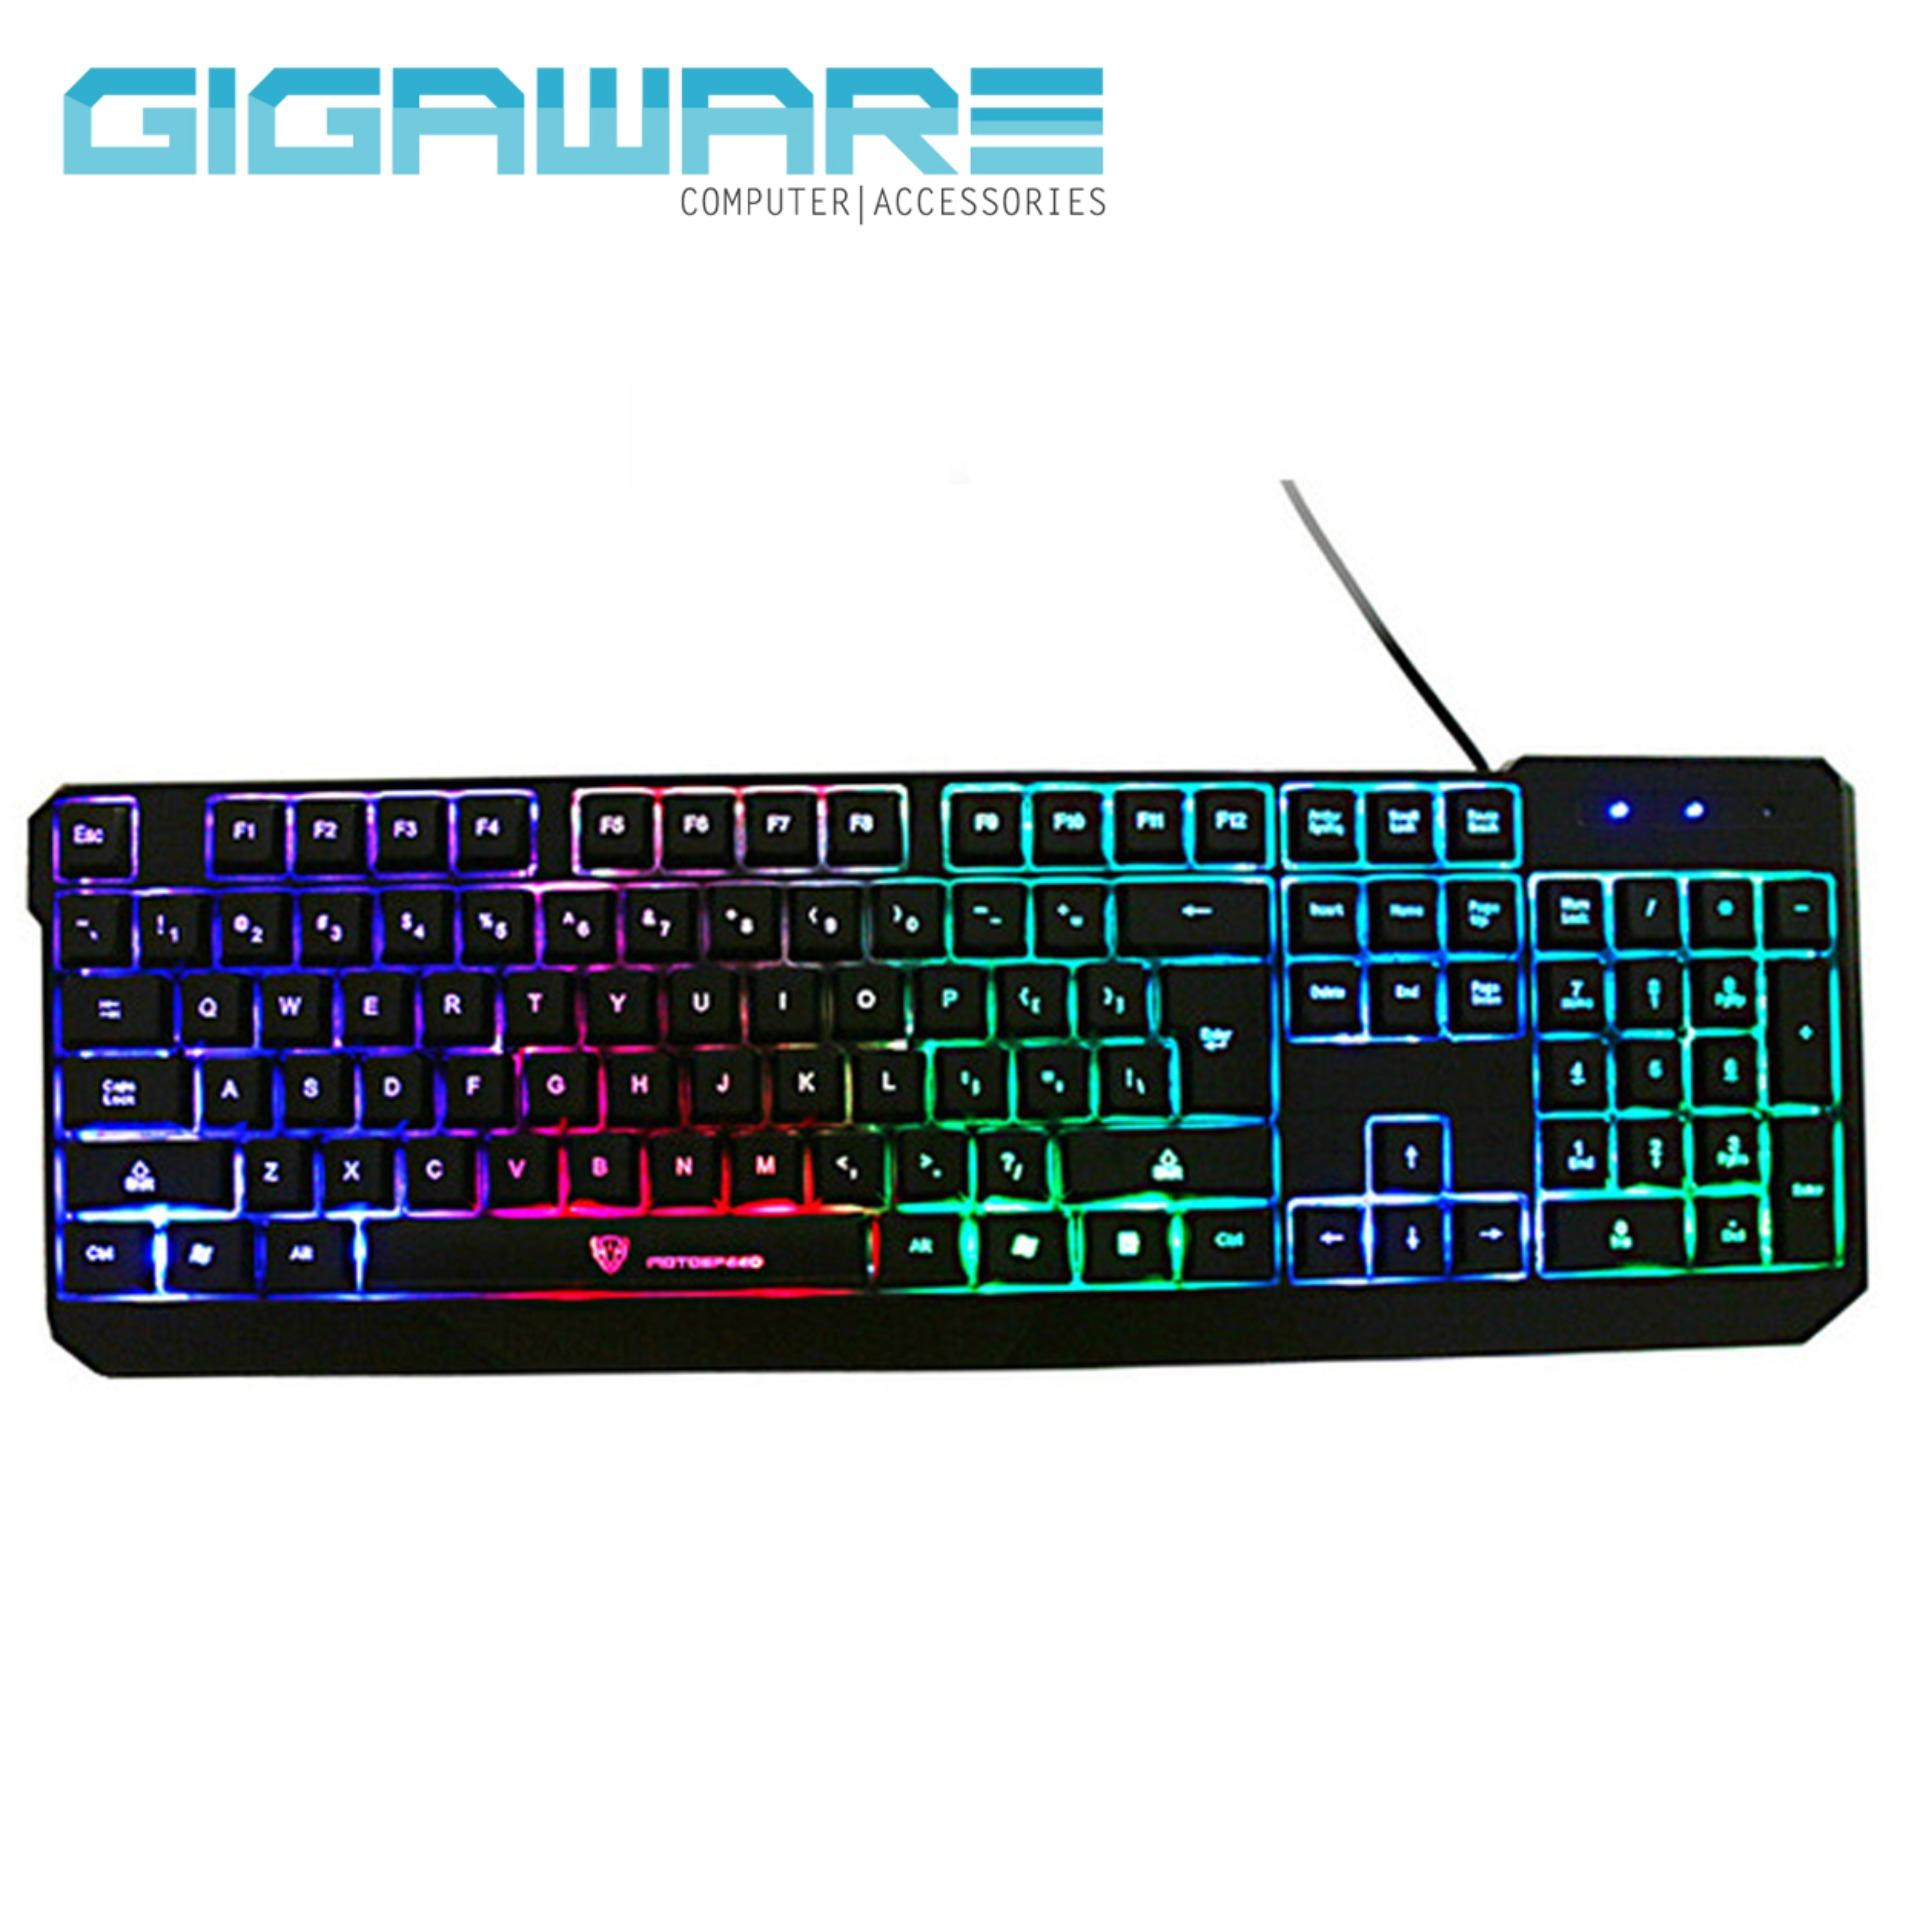 DOWNLOAD DRIVER: GIGAWARE KEYBOARD